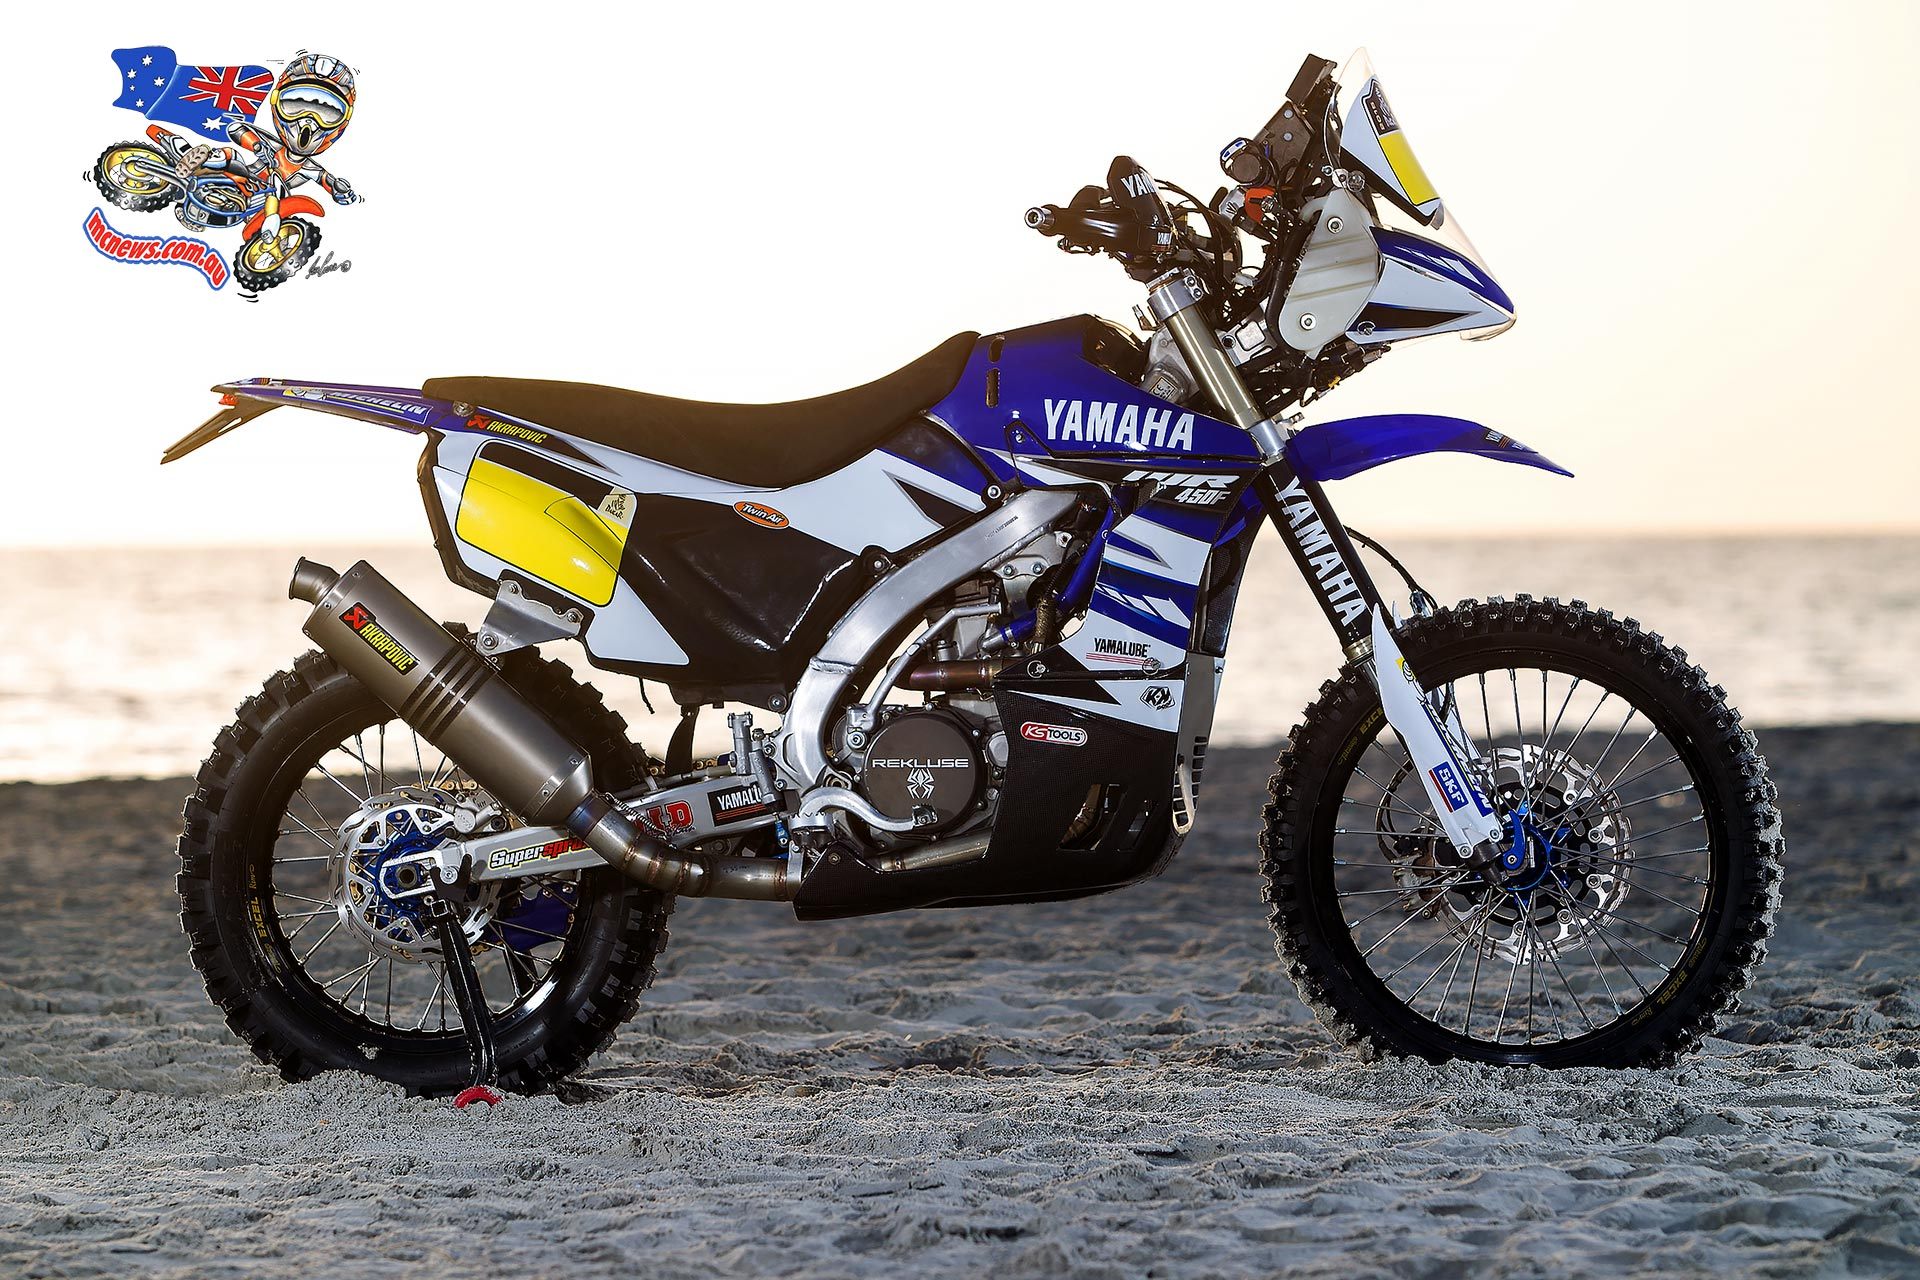 2015 Yamaha WR450F Rally